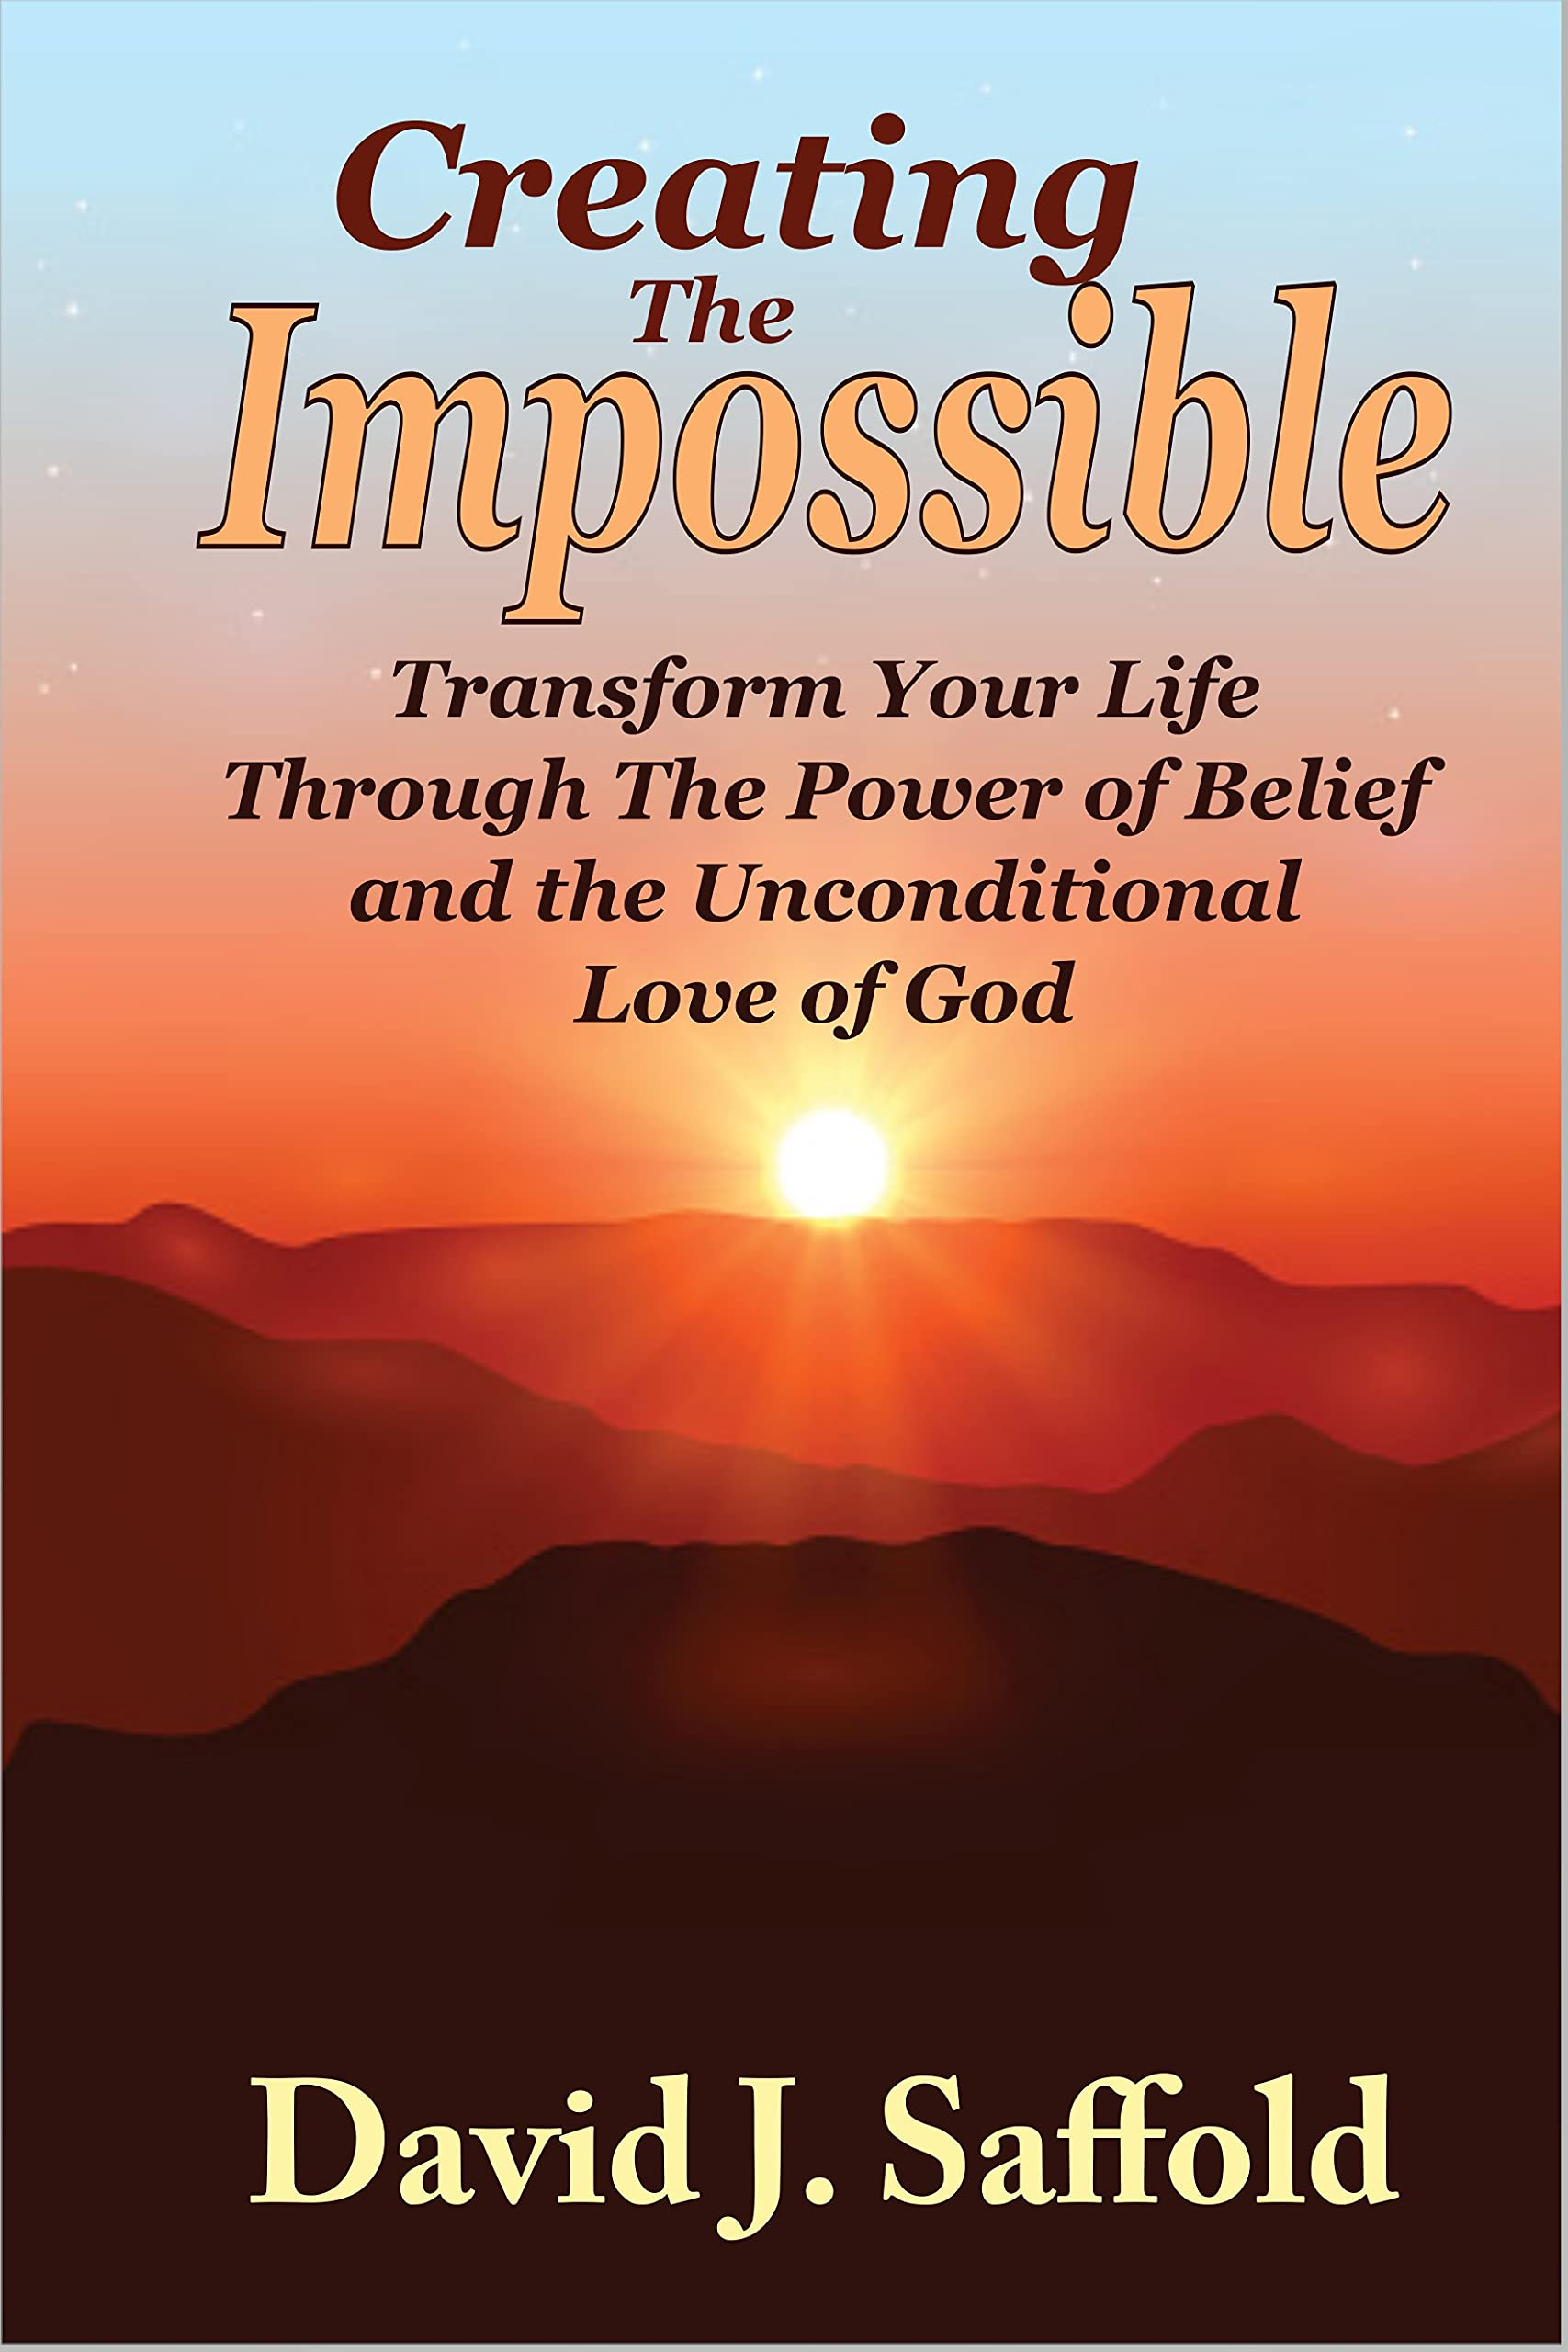 Creating The Impossible: Transform Your Life Through the Power of Belief and the Unconditional Love of God